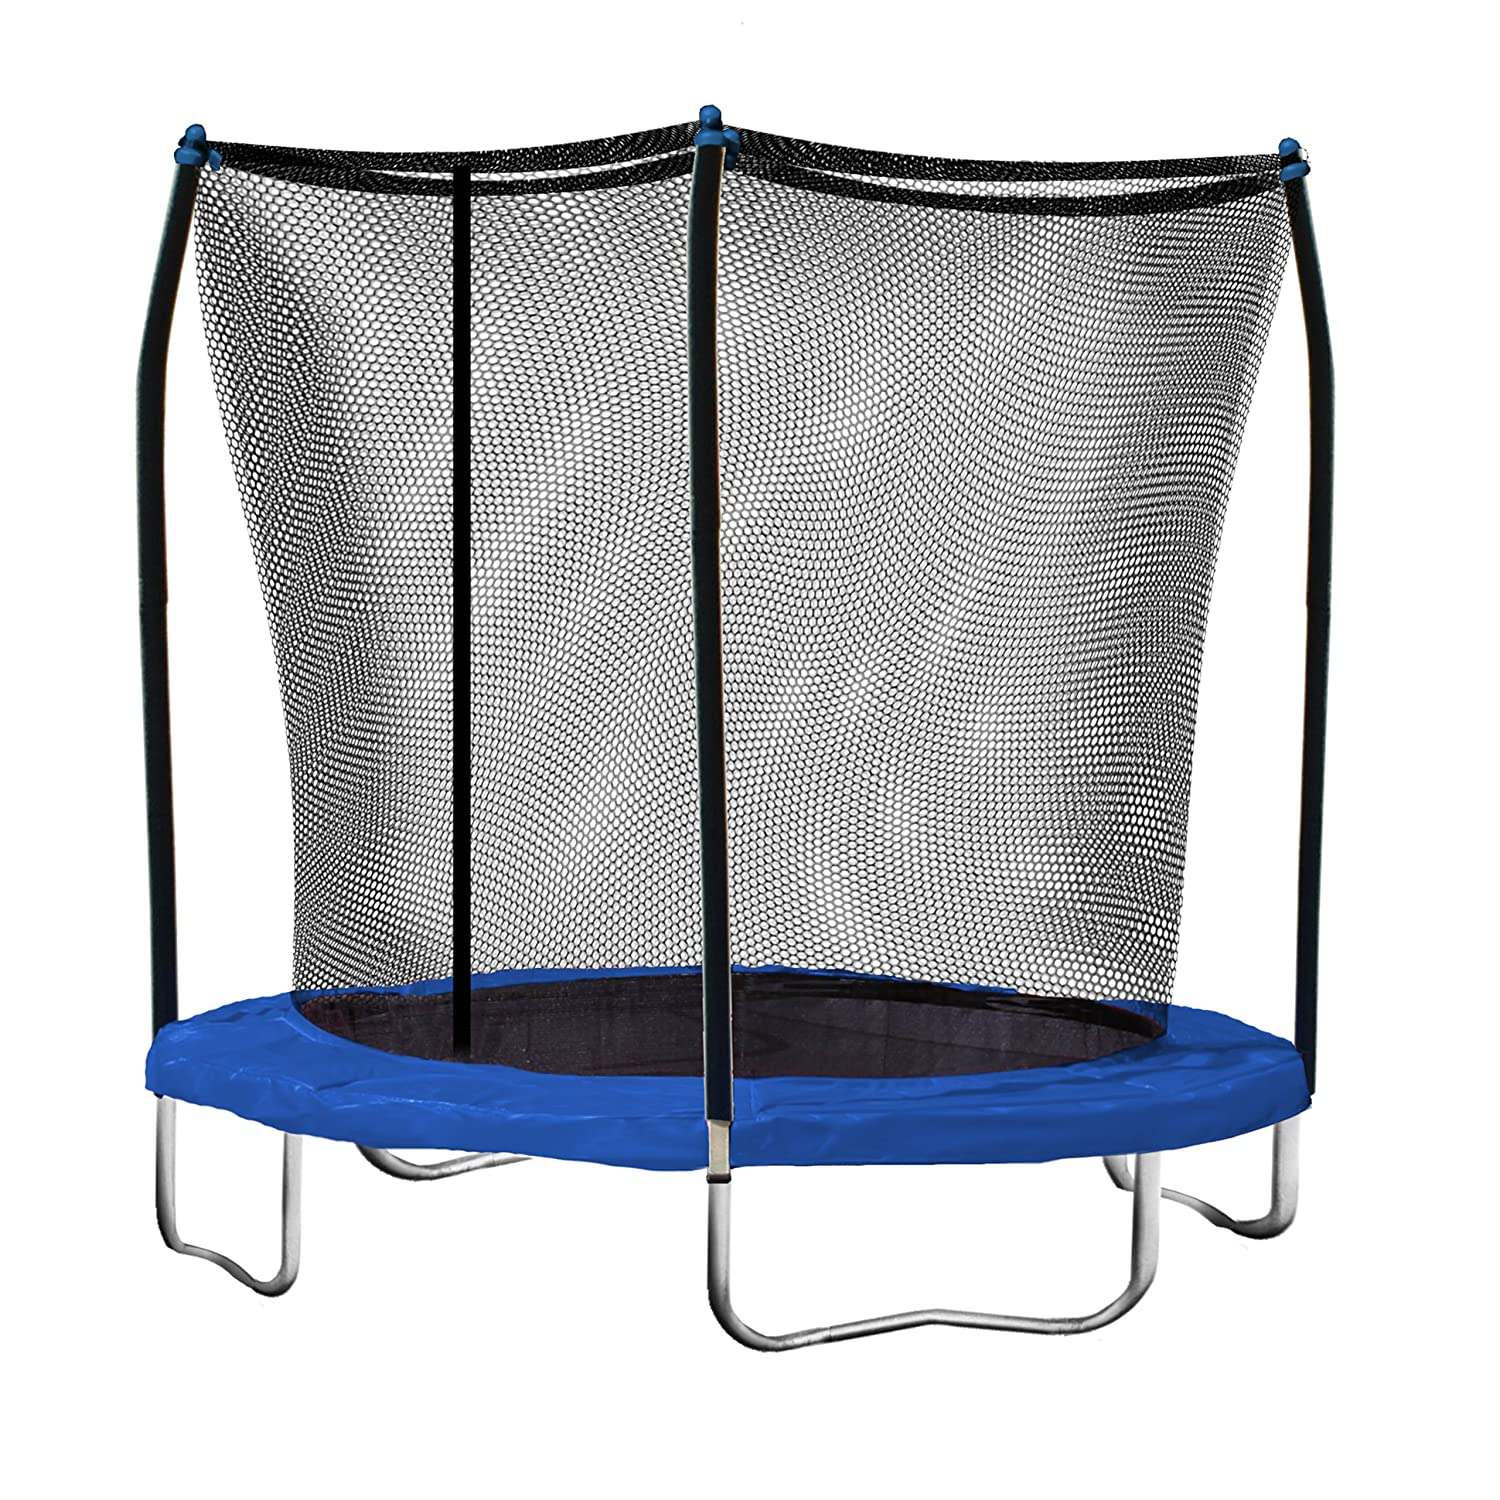 The Top 50 Safest Trampolines - The Top 50 Safest Trampolines: Ratings, Reviews & More Safety.com